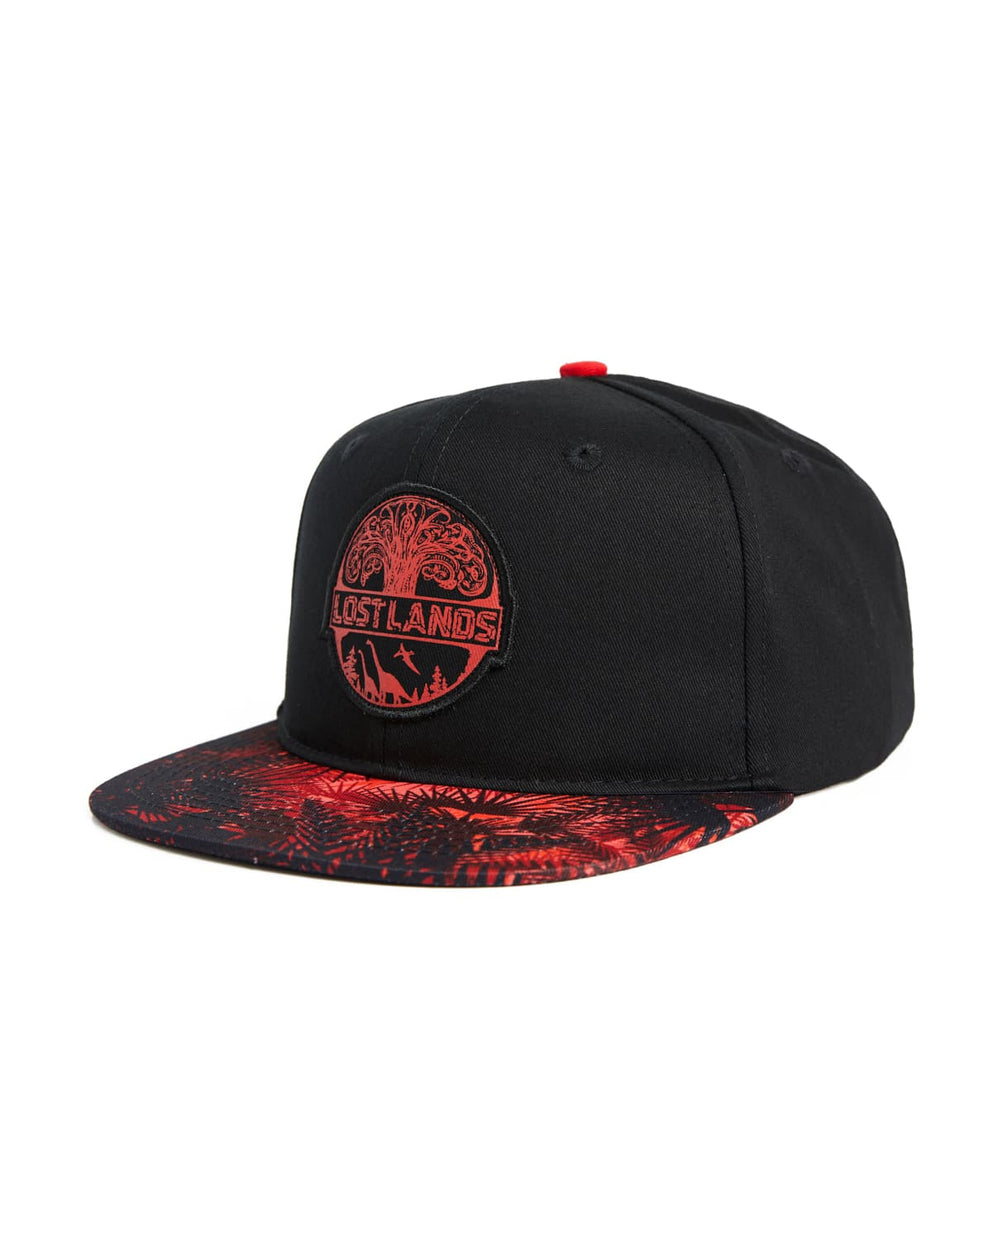 Lost Lands 'Tree of Life' Snapback (Black/Red)